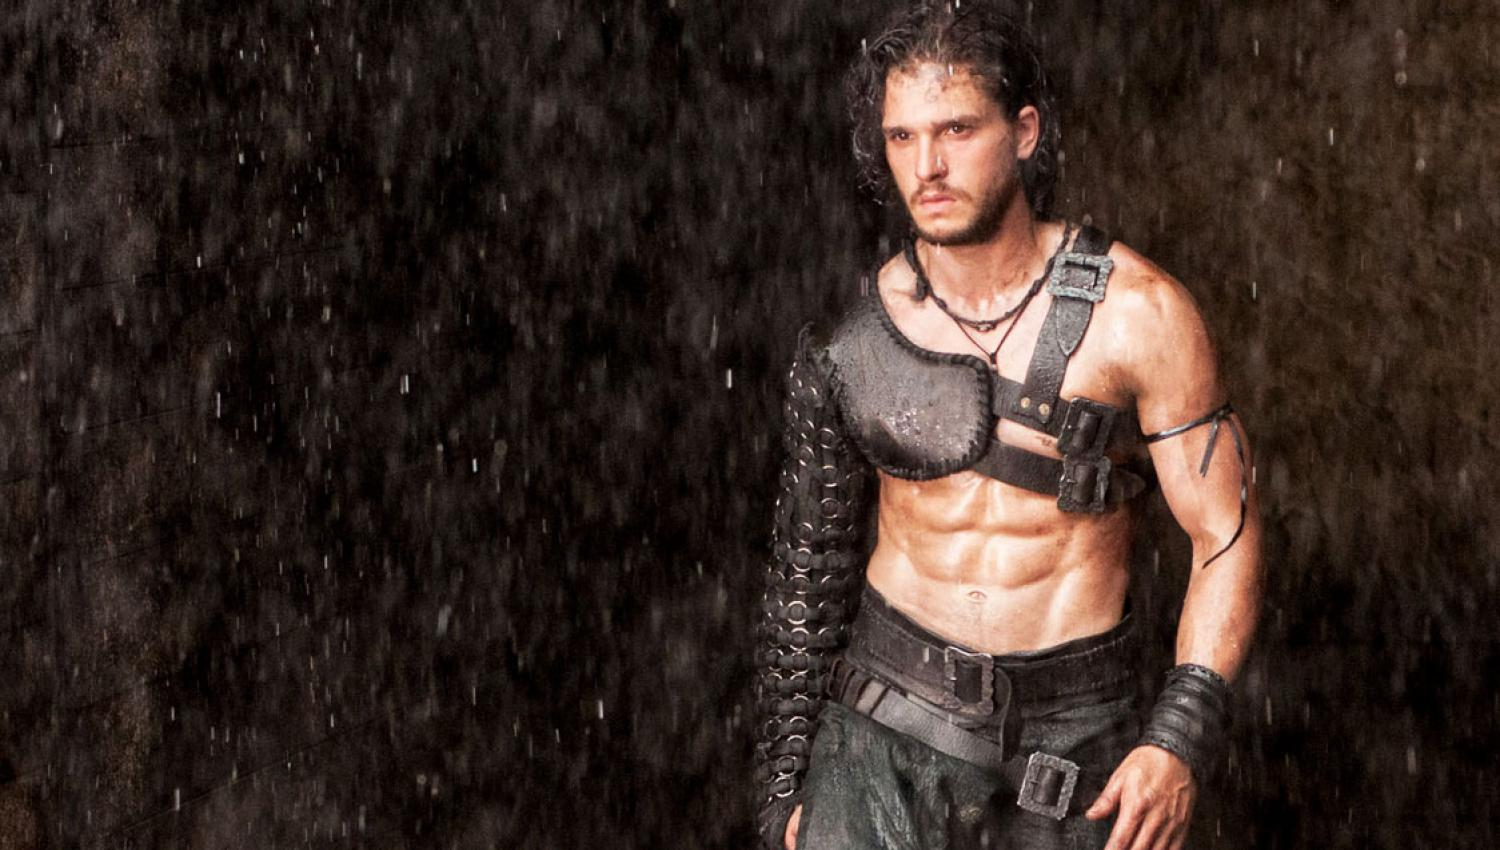 pompeii-kit-harington-workout-and-diet-plan-gladiator-cover